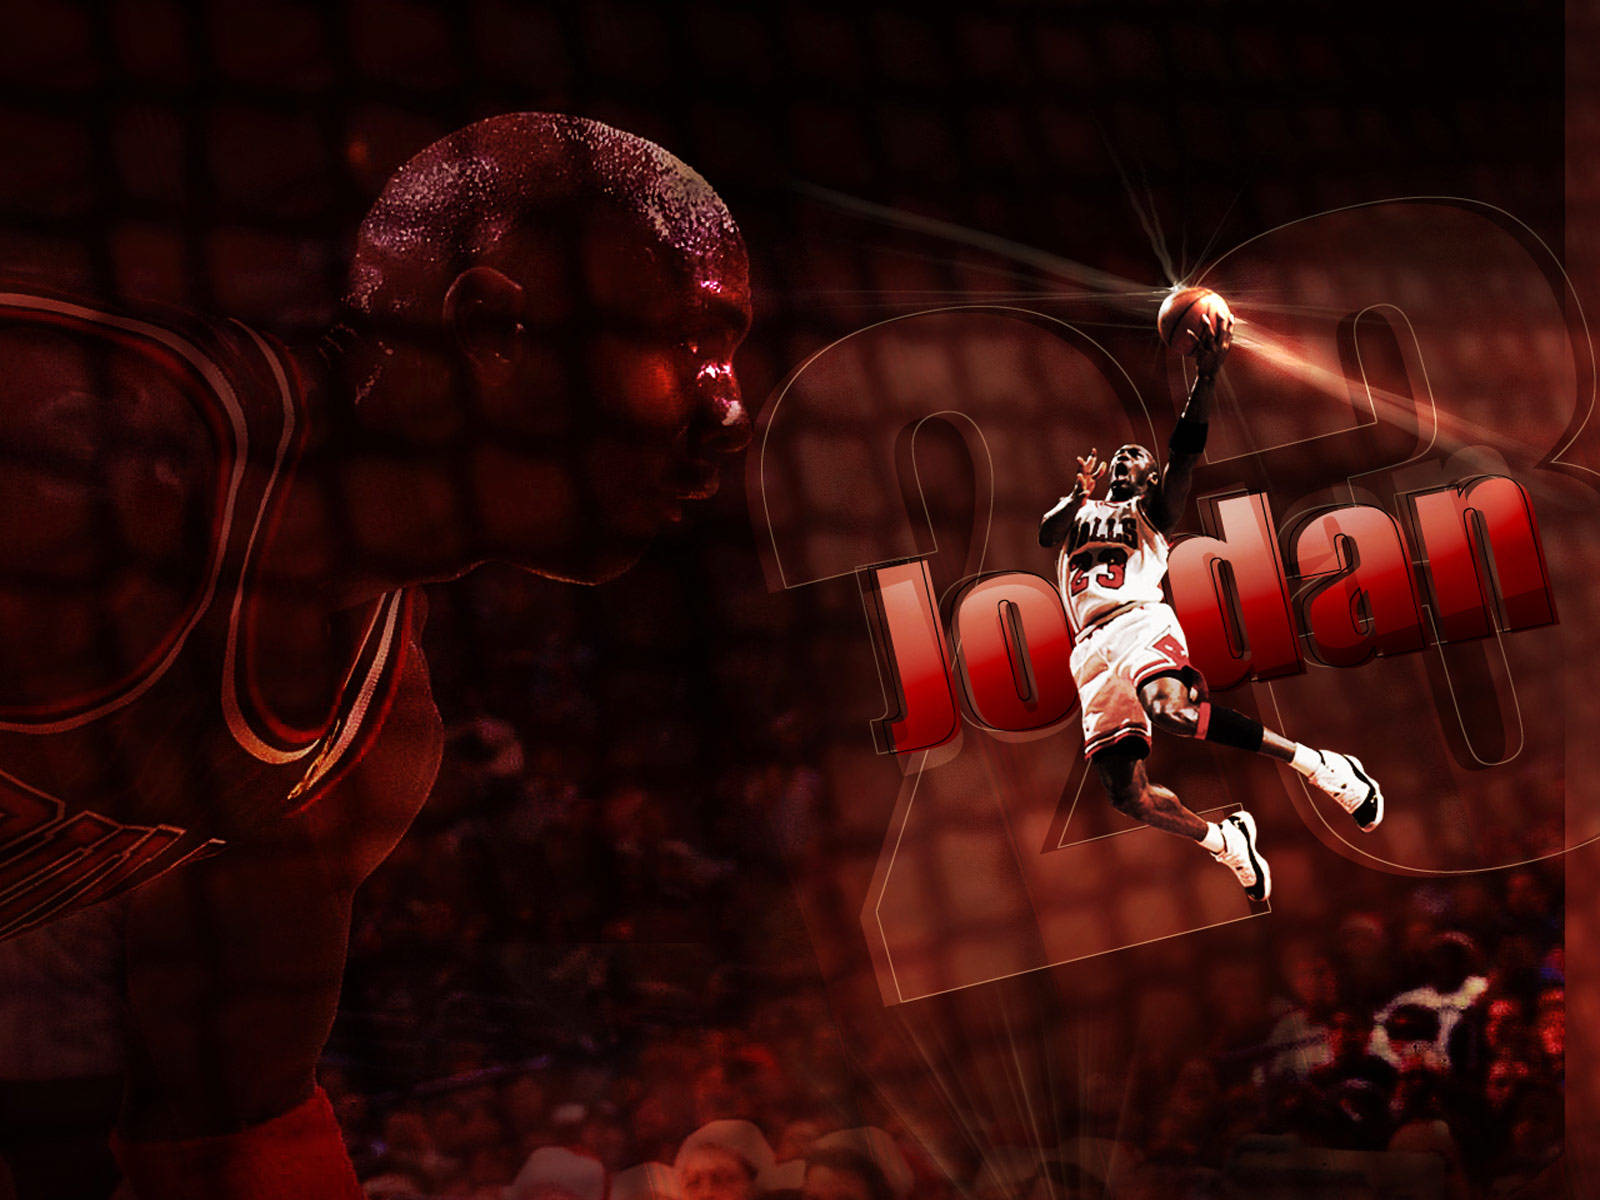 Michael Jordan Dunks HD Wallpaper Sports Wallpapers 1600x1200